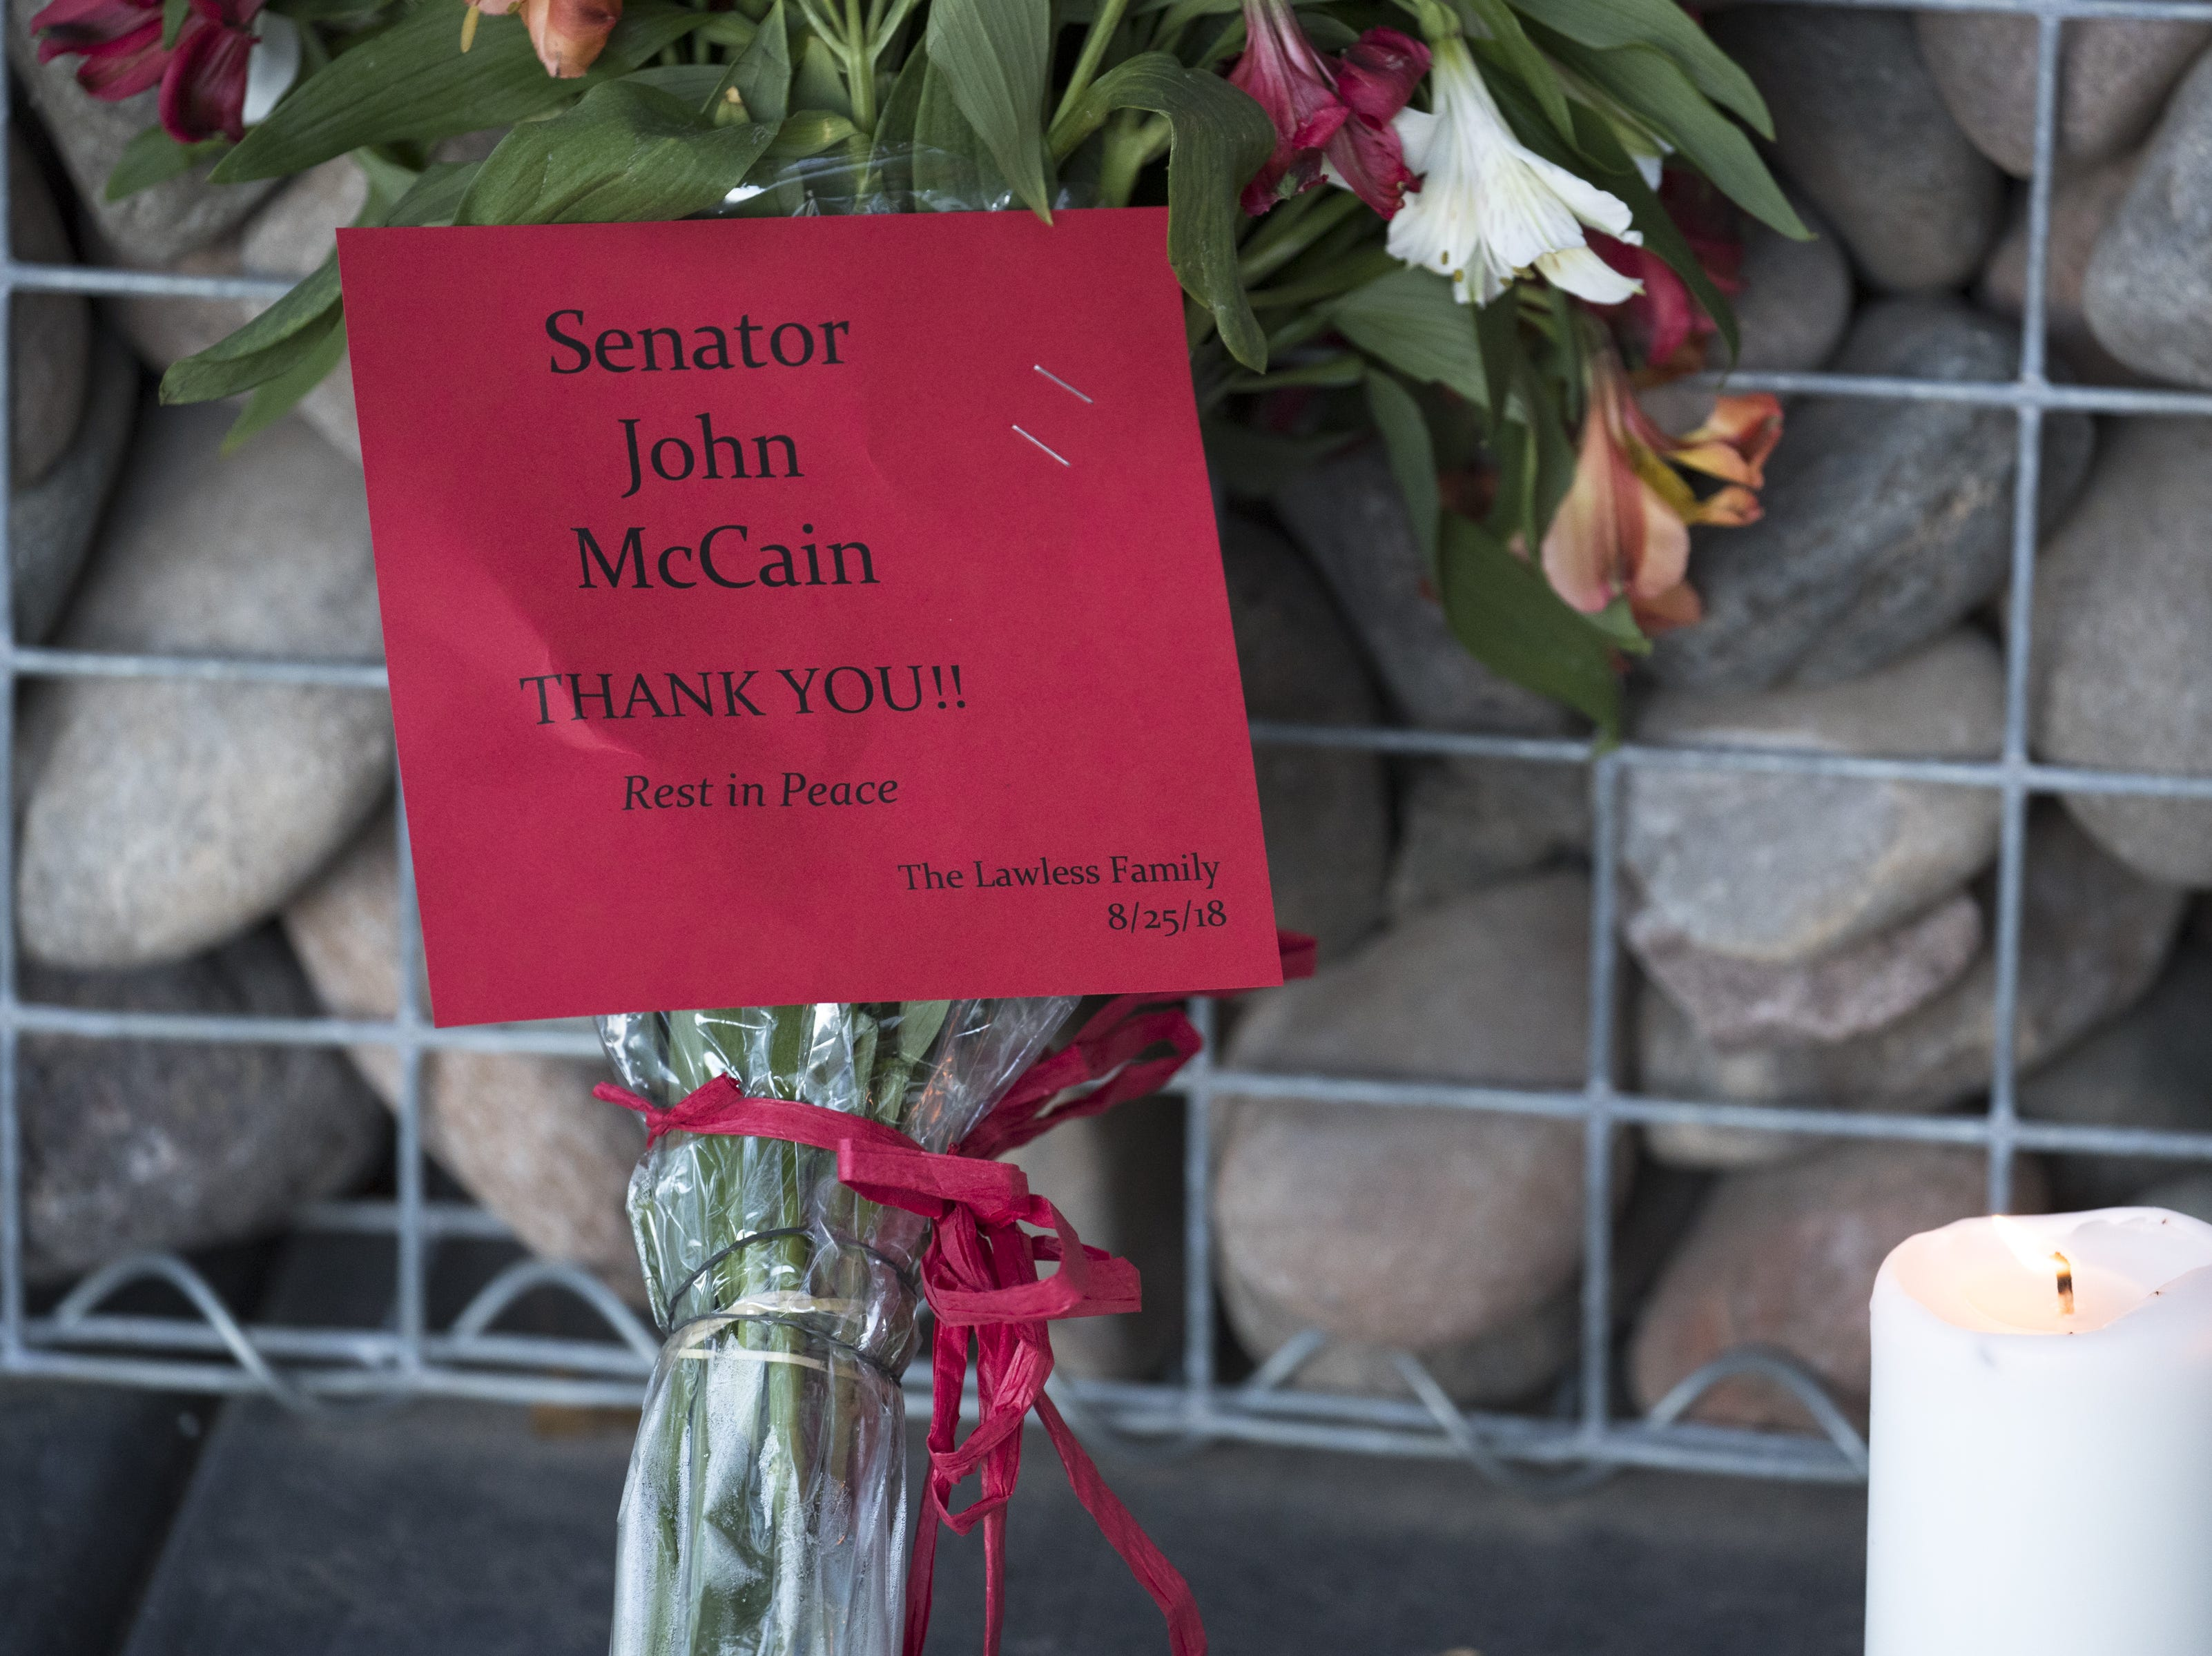 A makeshift memorial to honor Sen. John McCain formed outside his office on Aug. 26, 2018, in Phoenix.